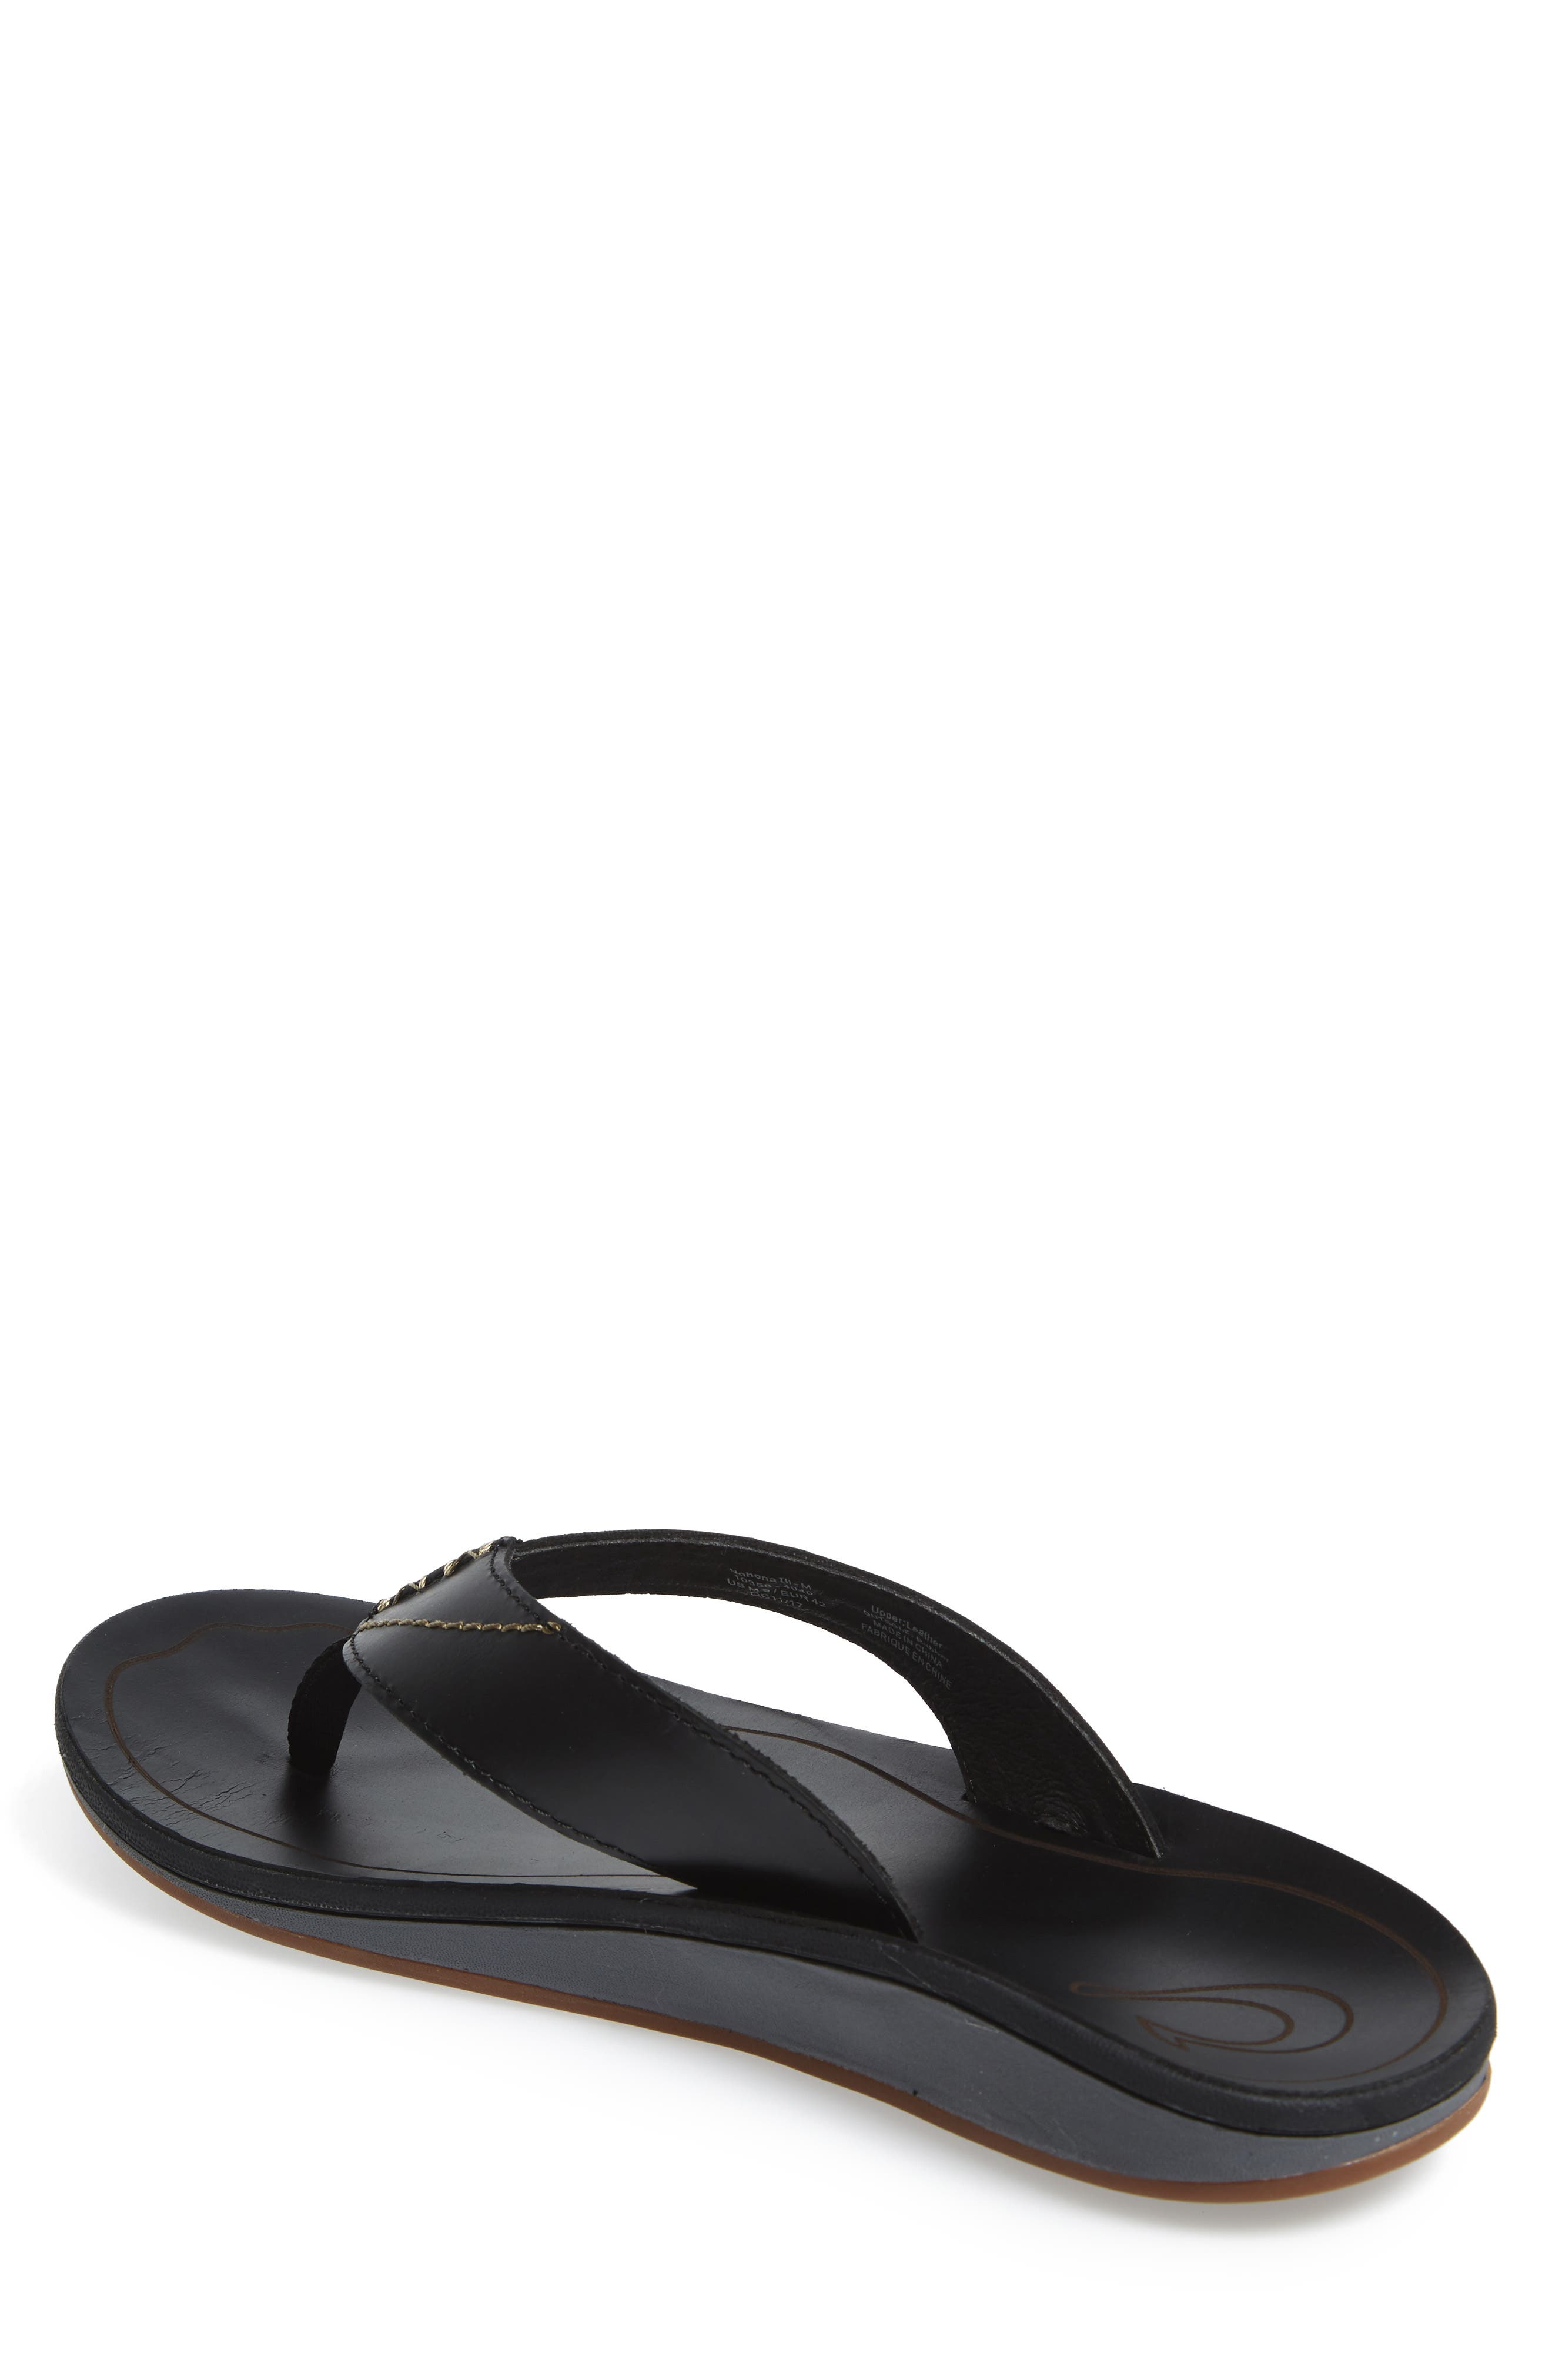 OLUKAI, Nohona Ili Flip Flop, Alternate thumbnail 2, color, BLACK/ BLACK LEATHER